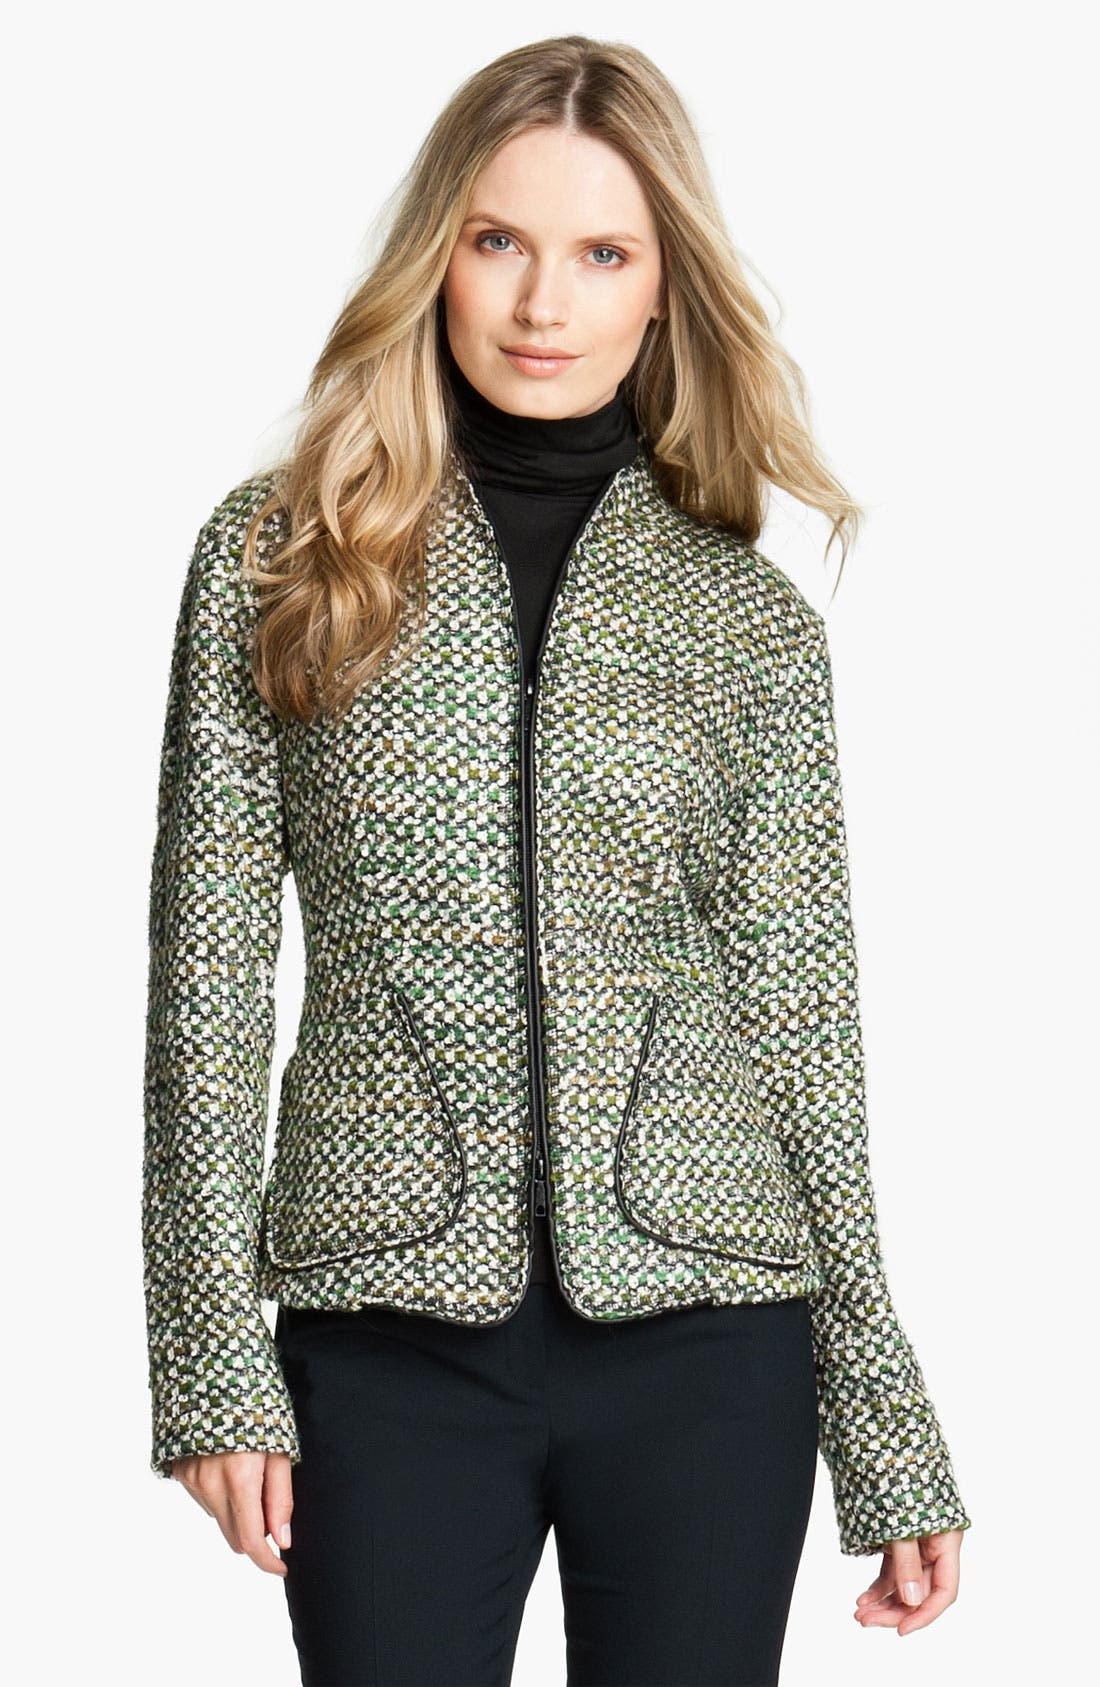 Alternate Image 1 Selected - Lafayette 148 New York 'Hierarchy' Tweed Jacket